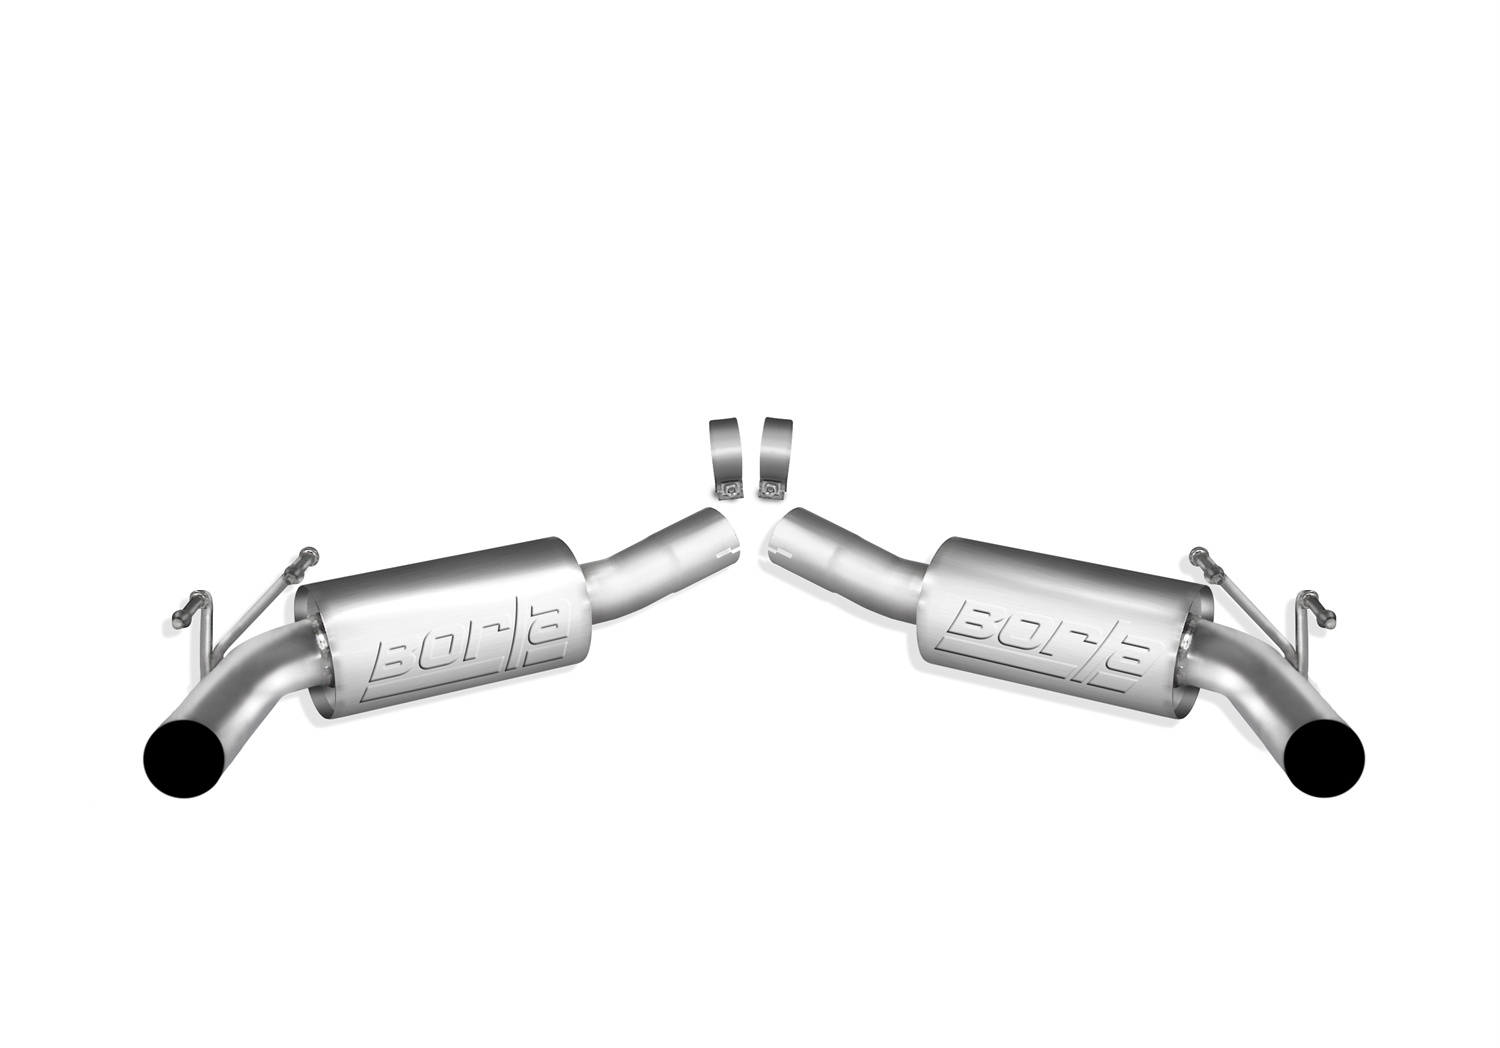 Borla S Type Axle Back Exhaust System Fits 10 13